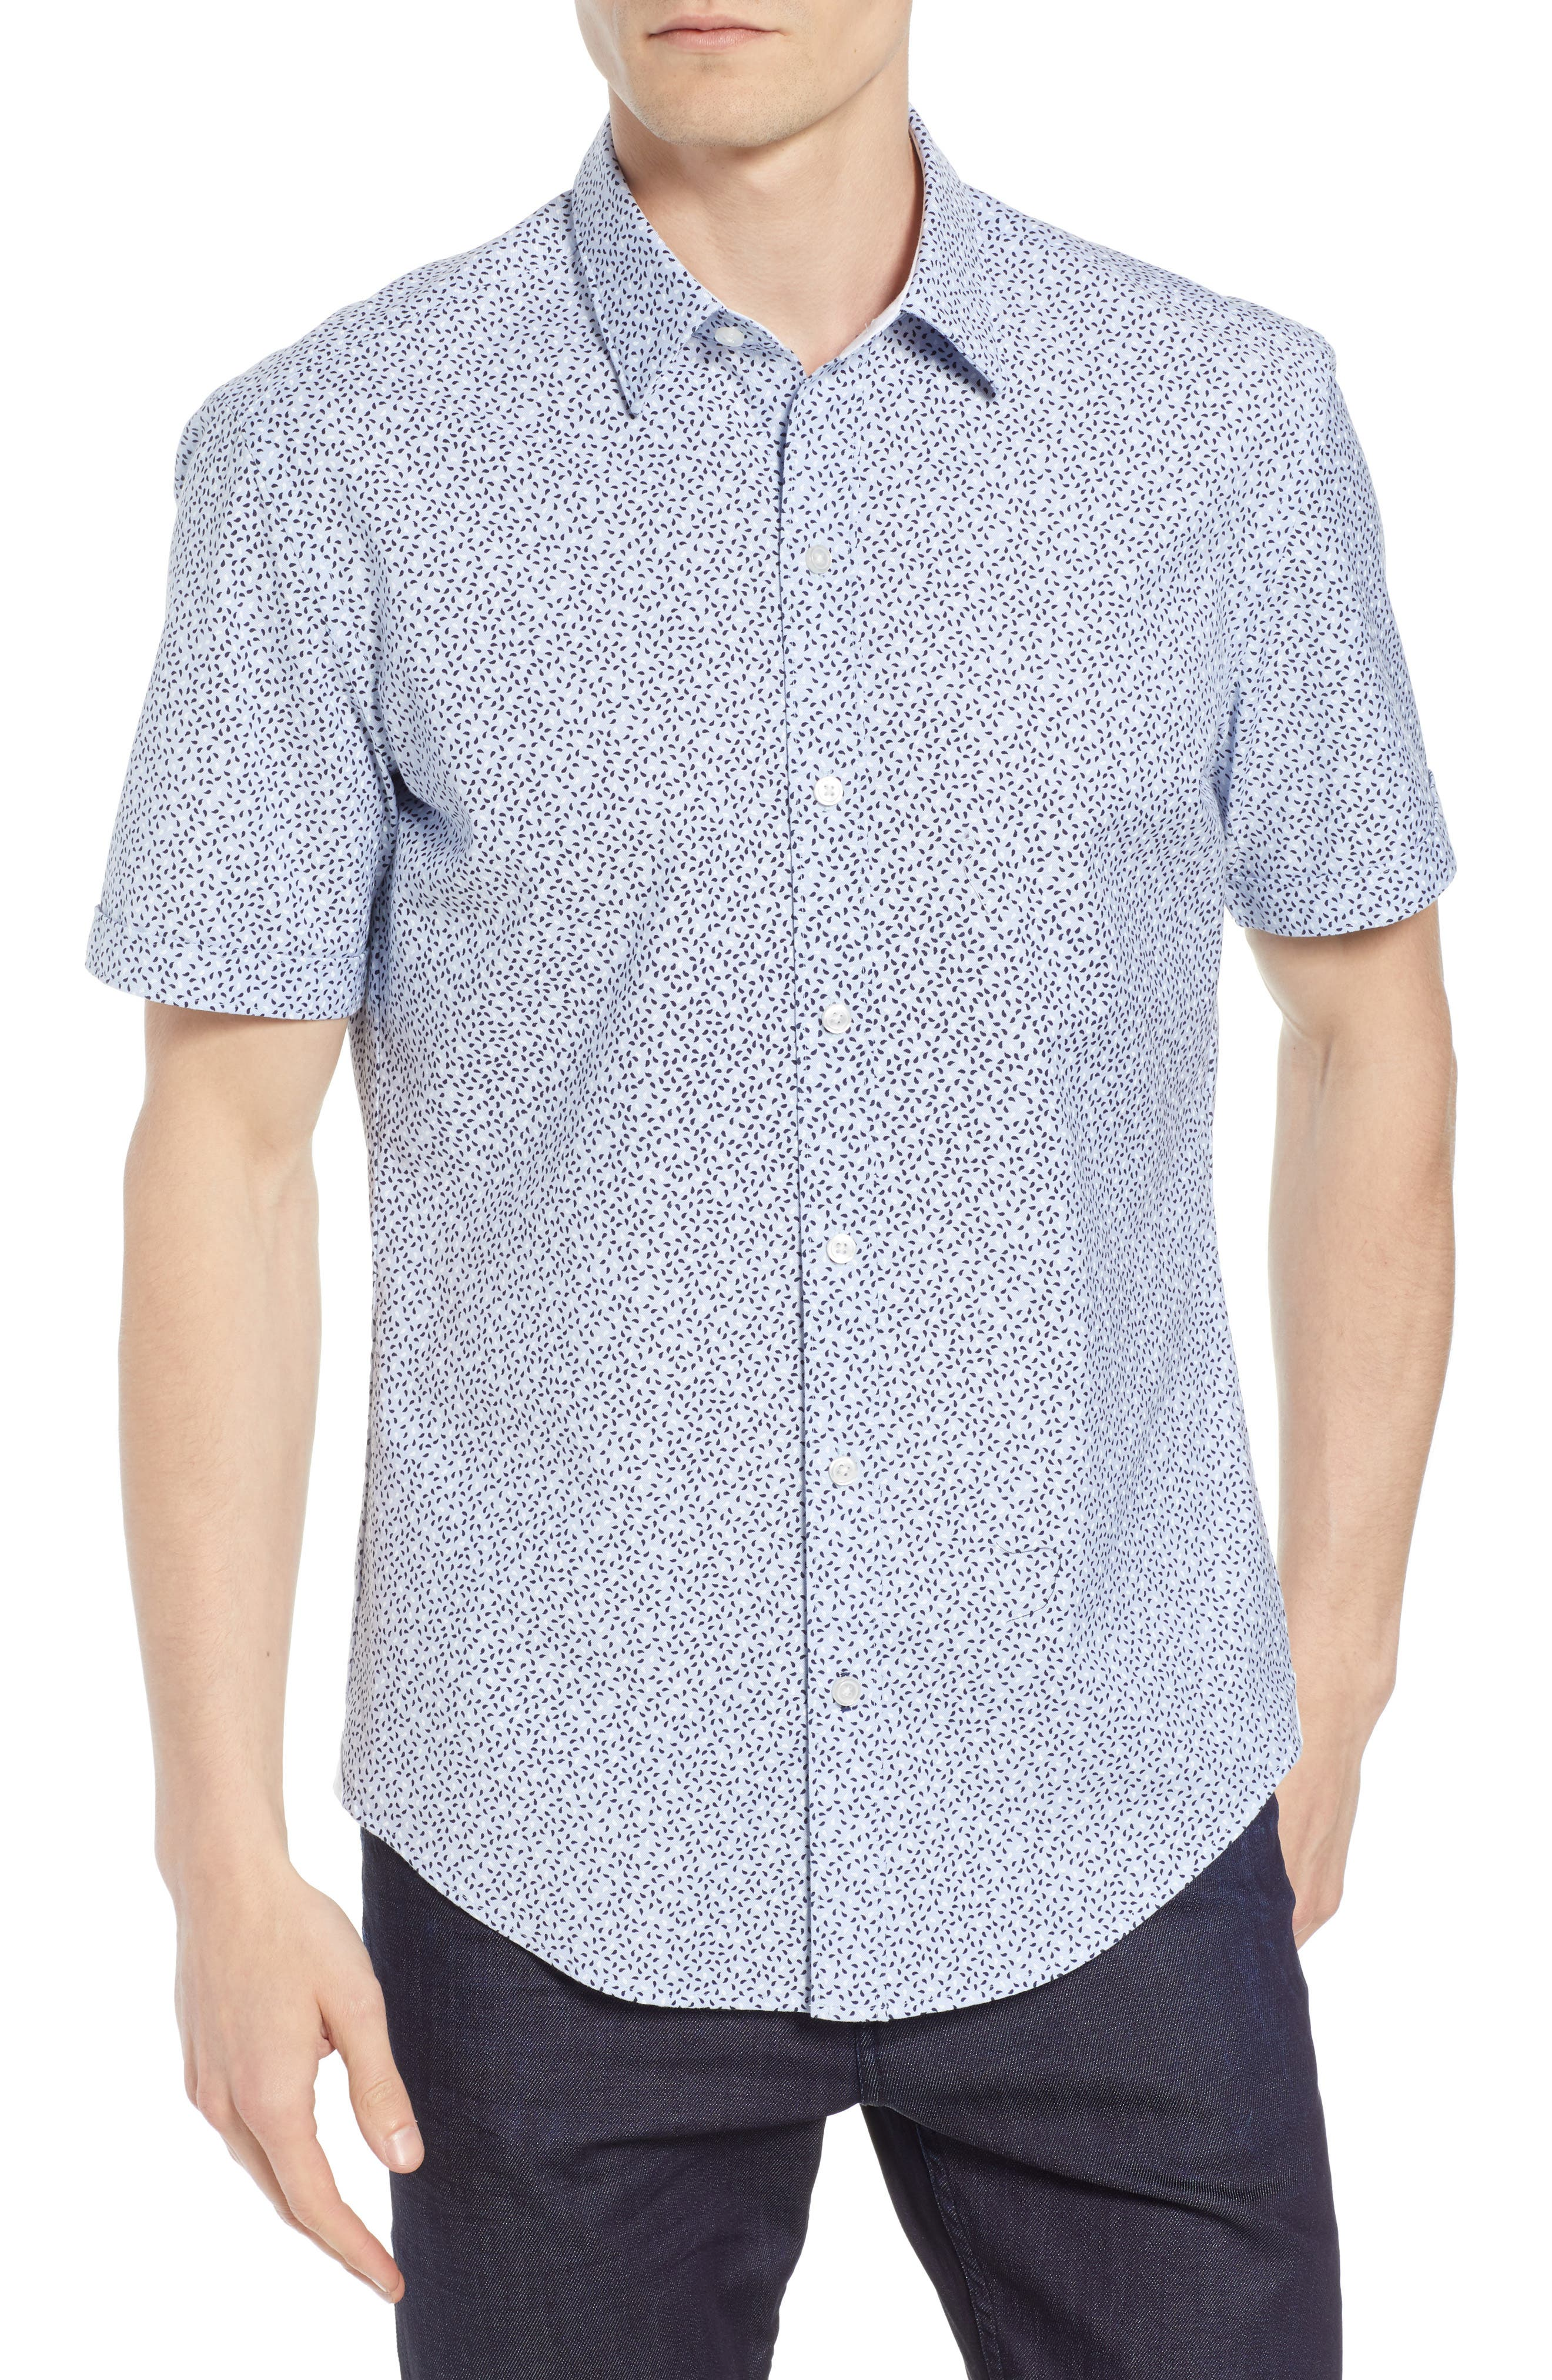 Robb Trim Fit Paisley Sport Shirt,                         Main,                         color, BLUE